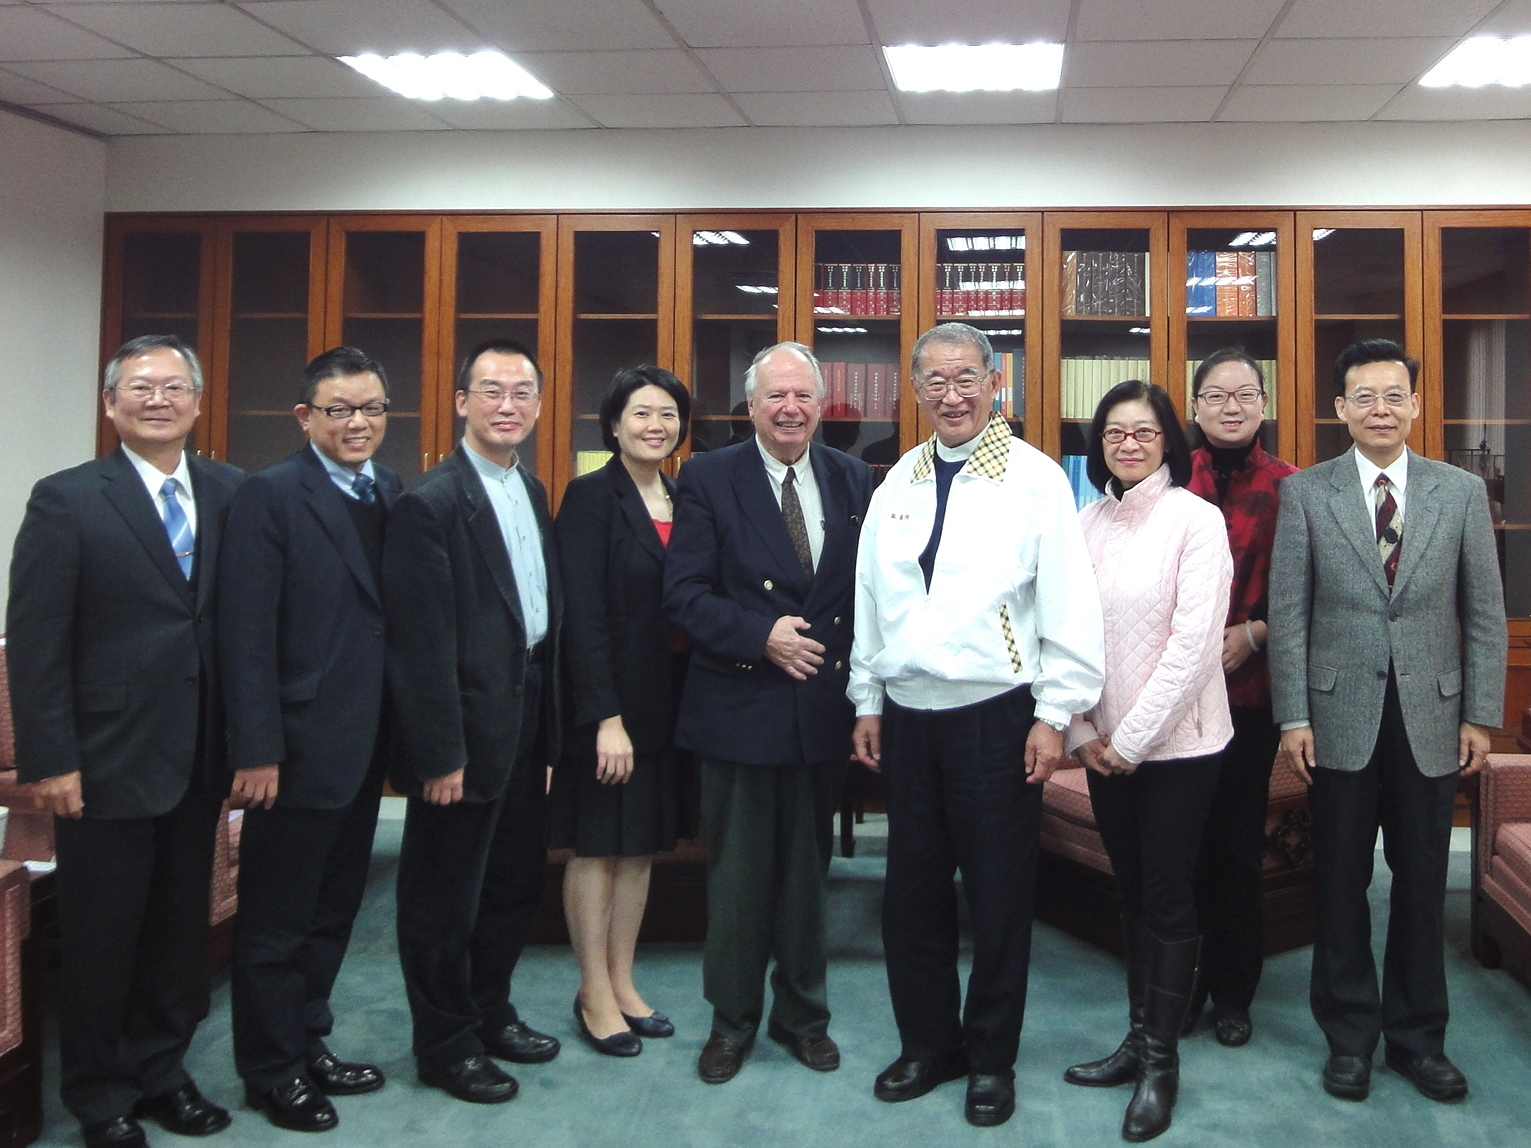 President of Association of World Citizens Visits the Control Yuan